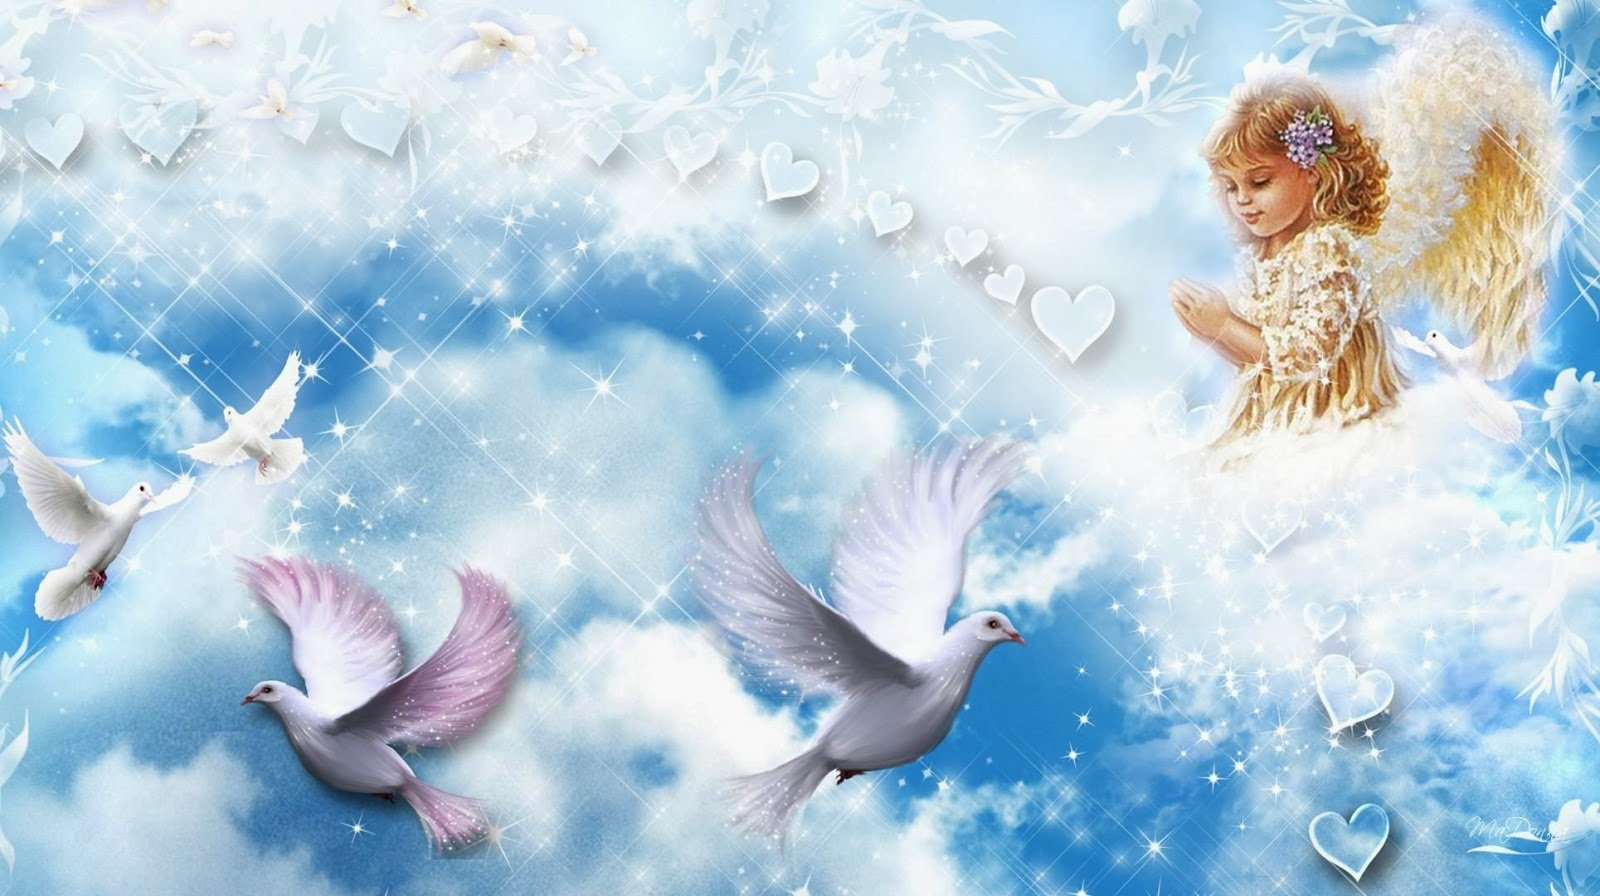 Angels and doves wallpaper   beautiful desktop wallpapers 2014 1600x896